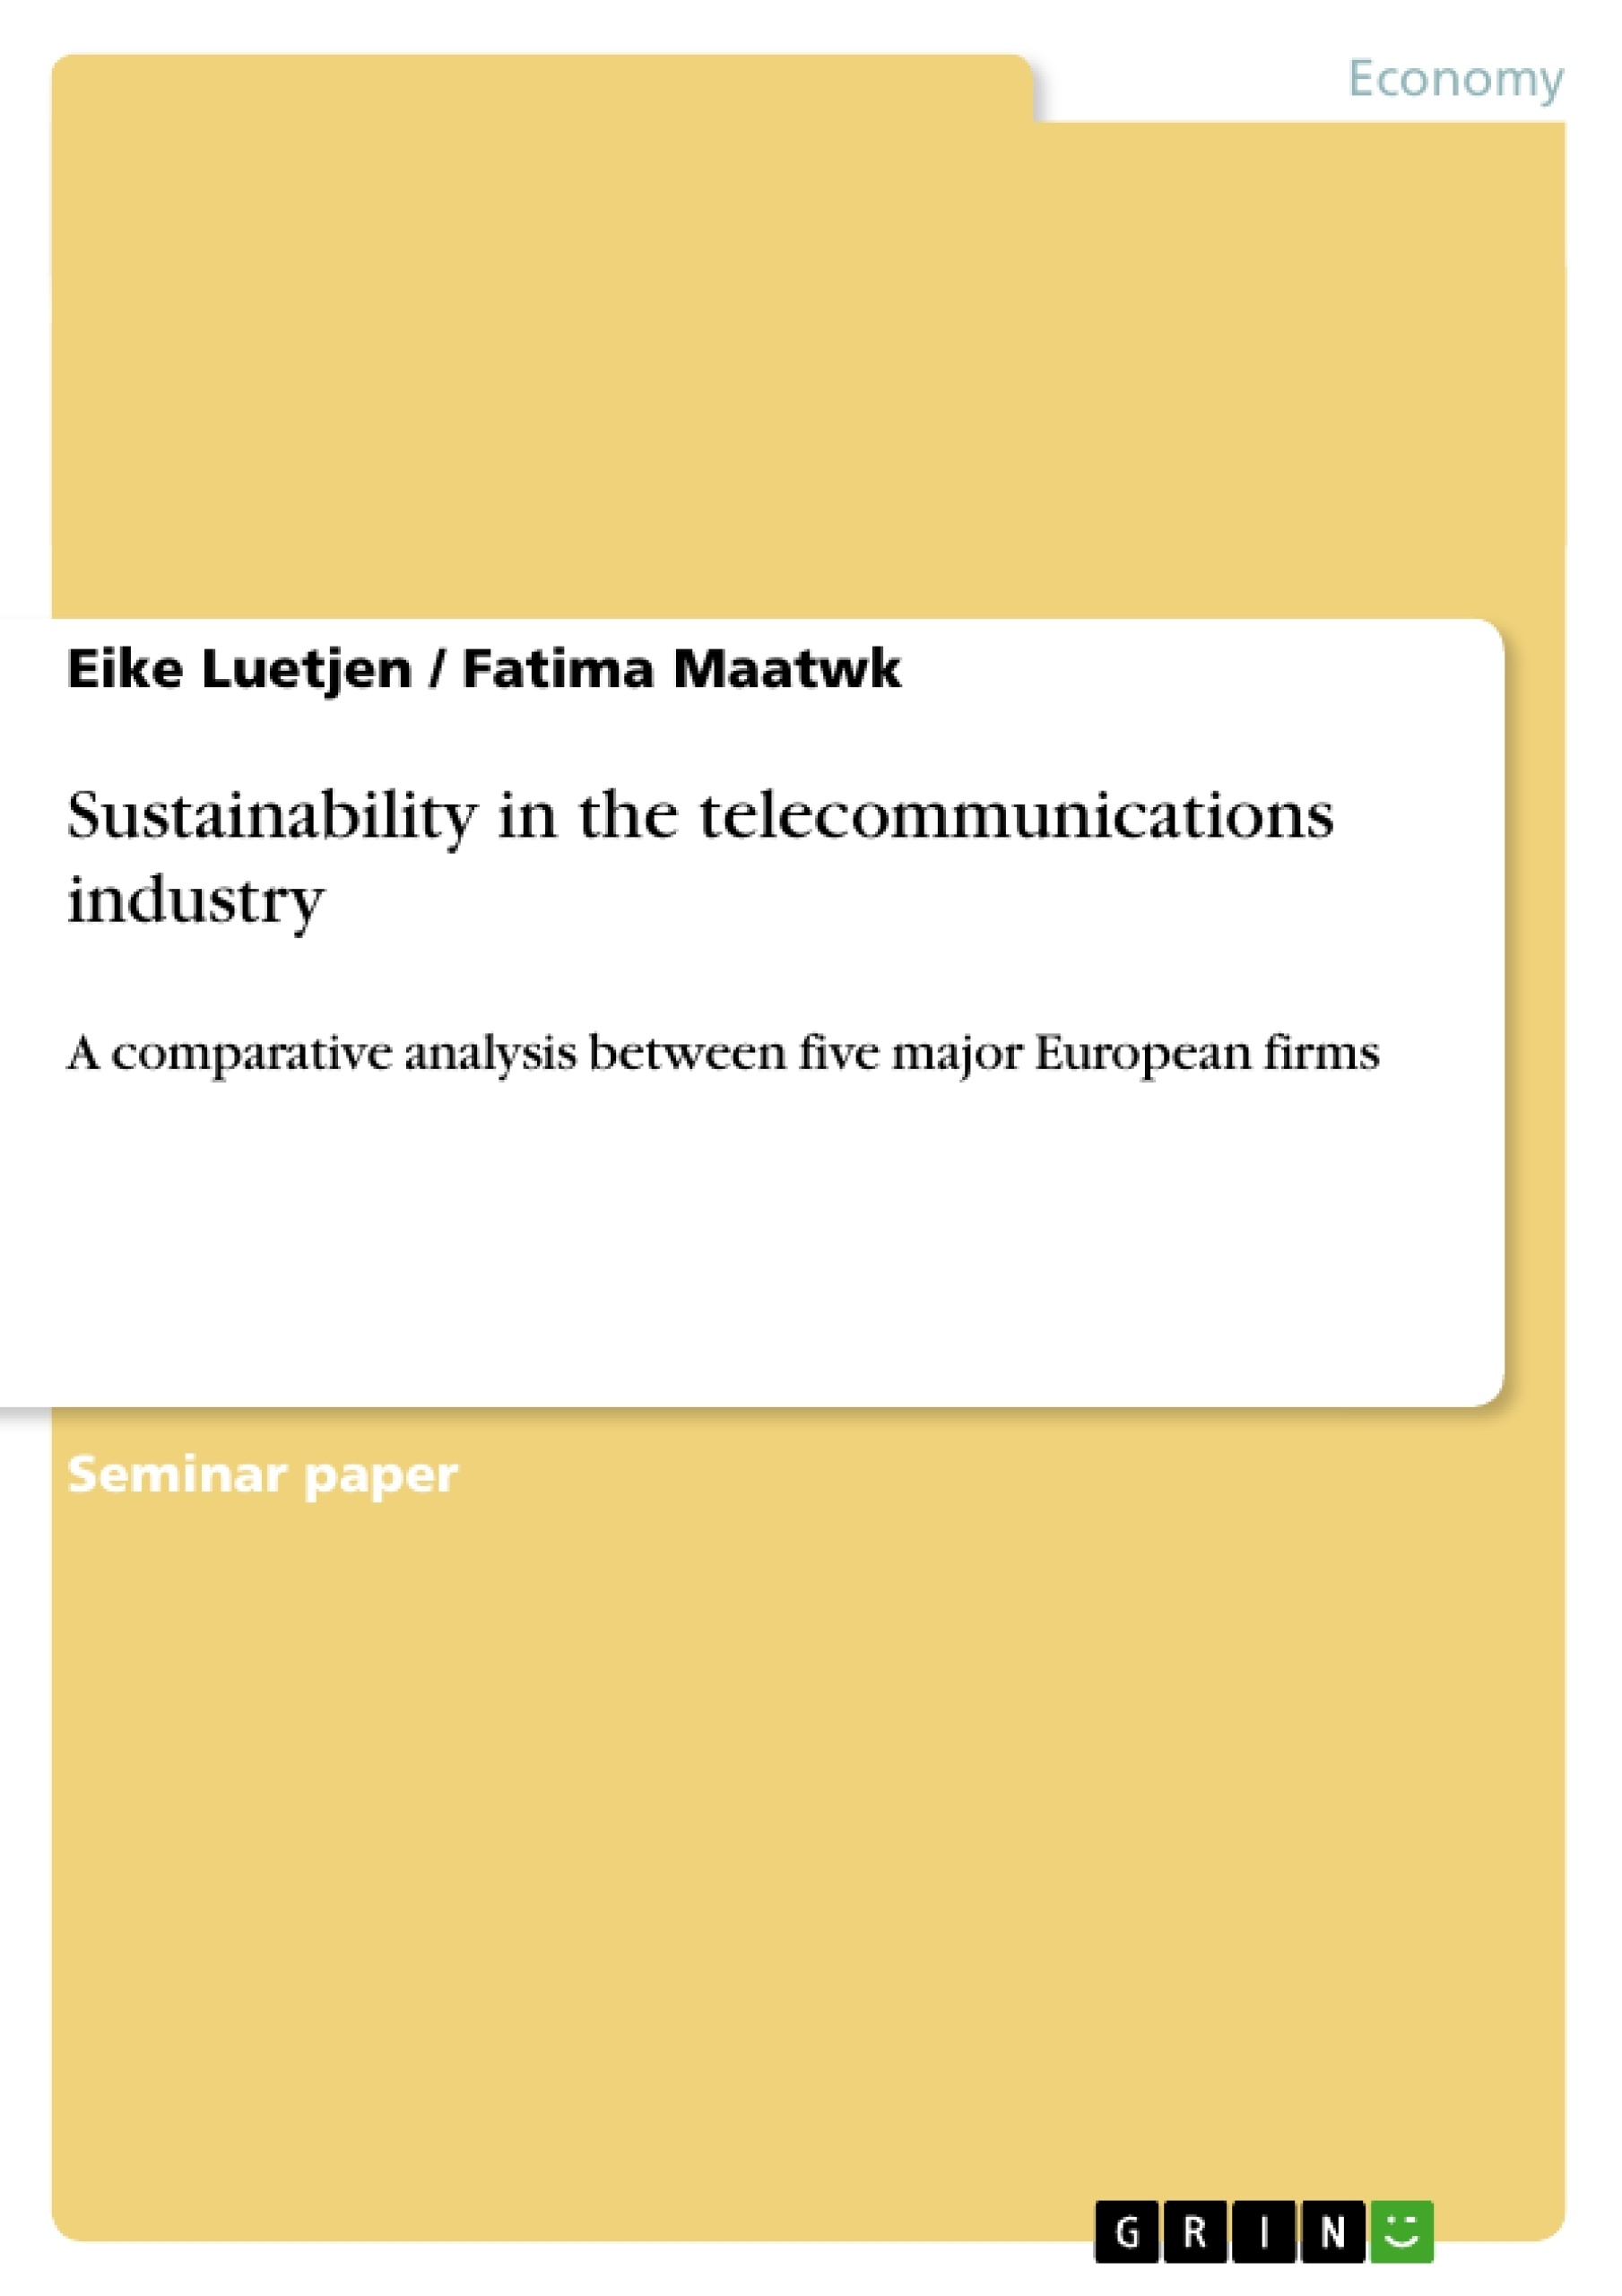 Master thesis in telecommunication germany